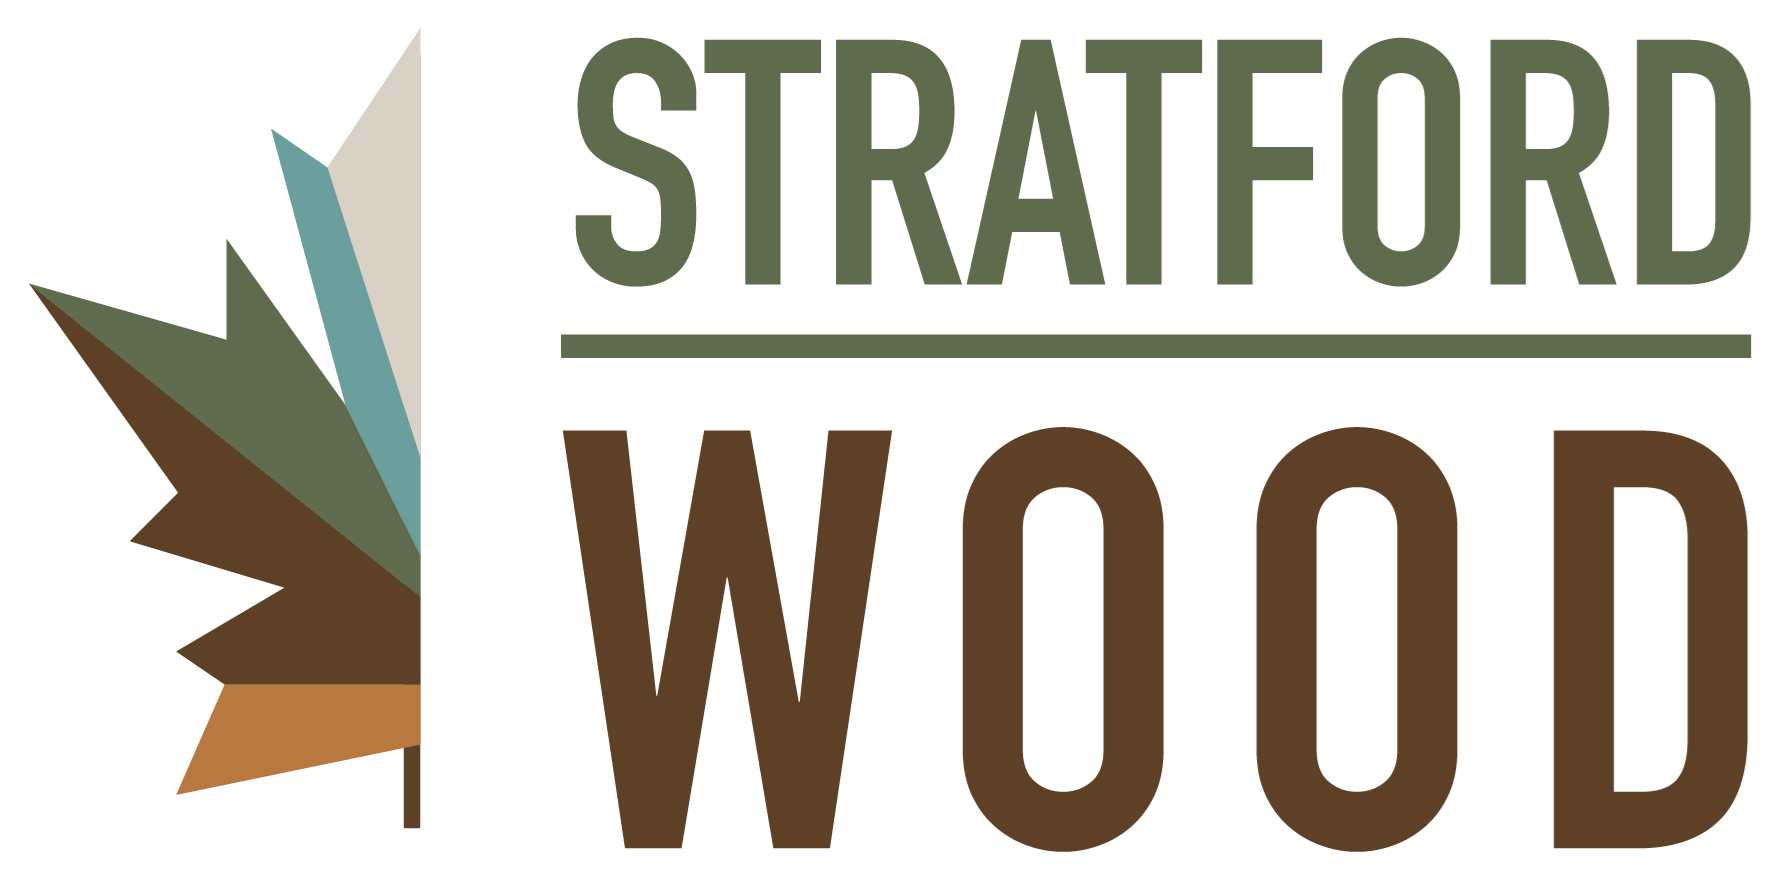 Stratford Wood Property Logo 1